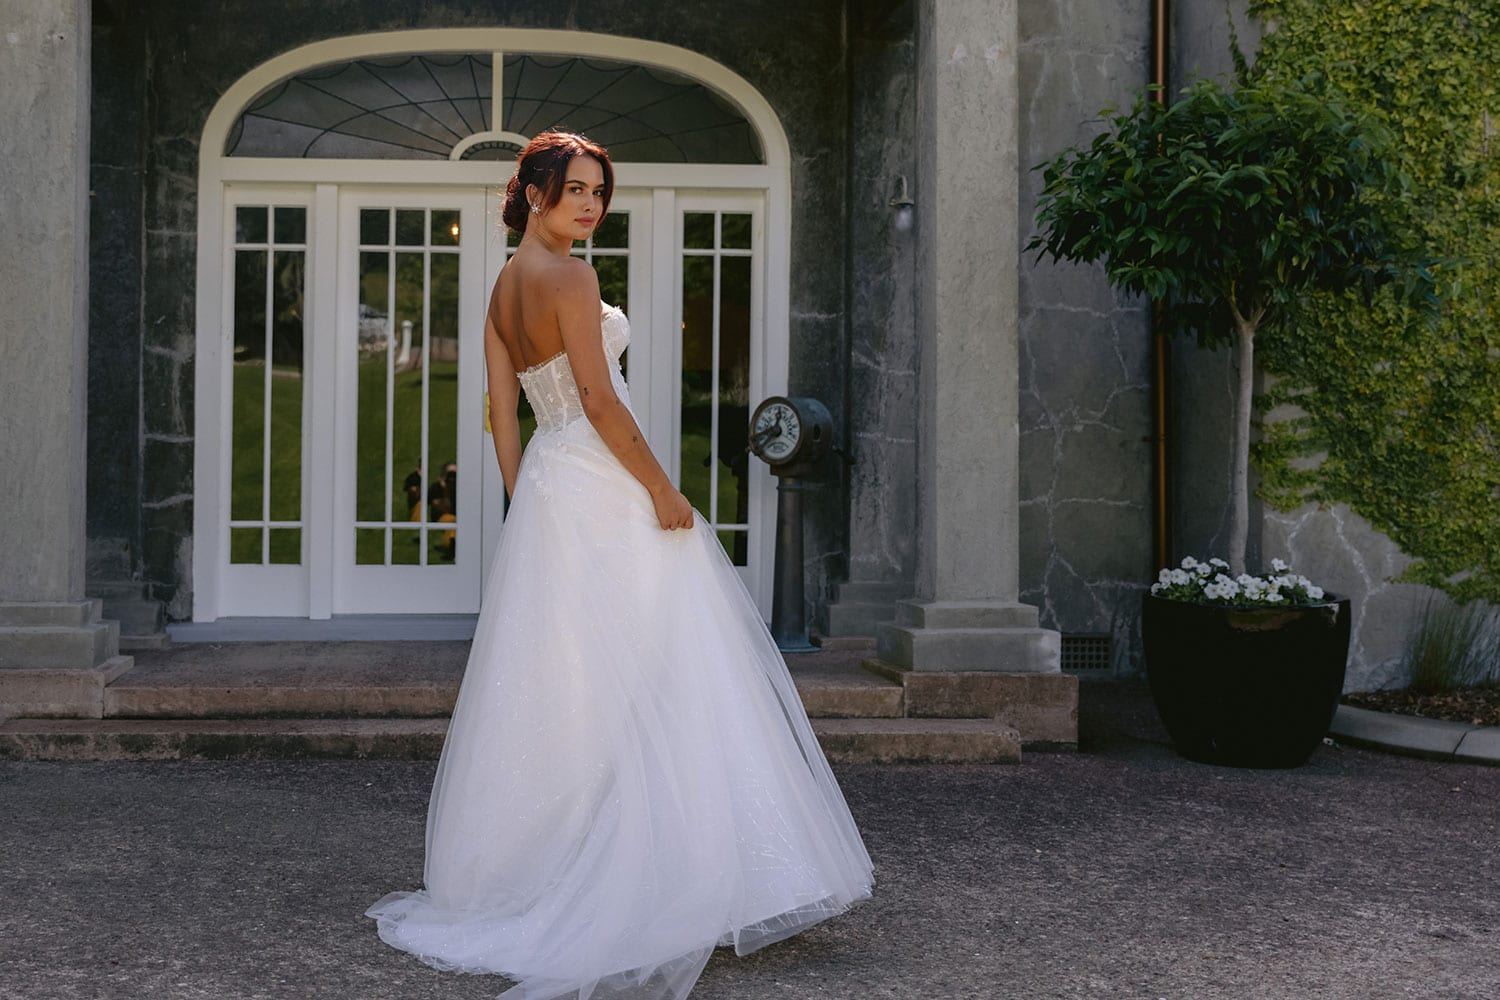 Hikari Wedding gown from Vinka Design - This modern wedding dress has a structured semi-sheer bodice with hand-appliqued lace of stars and flowers. The skirt is made with multiple layers of soft tulle. Model wearing gown showing back of dress in courtyard of old building near Auckland.